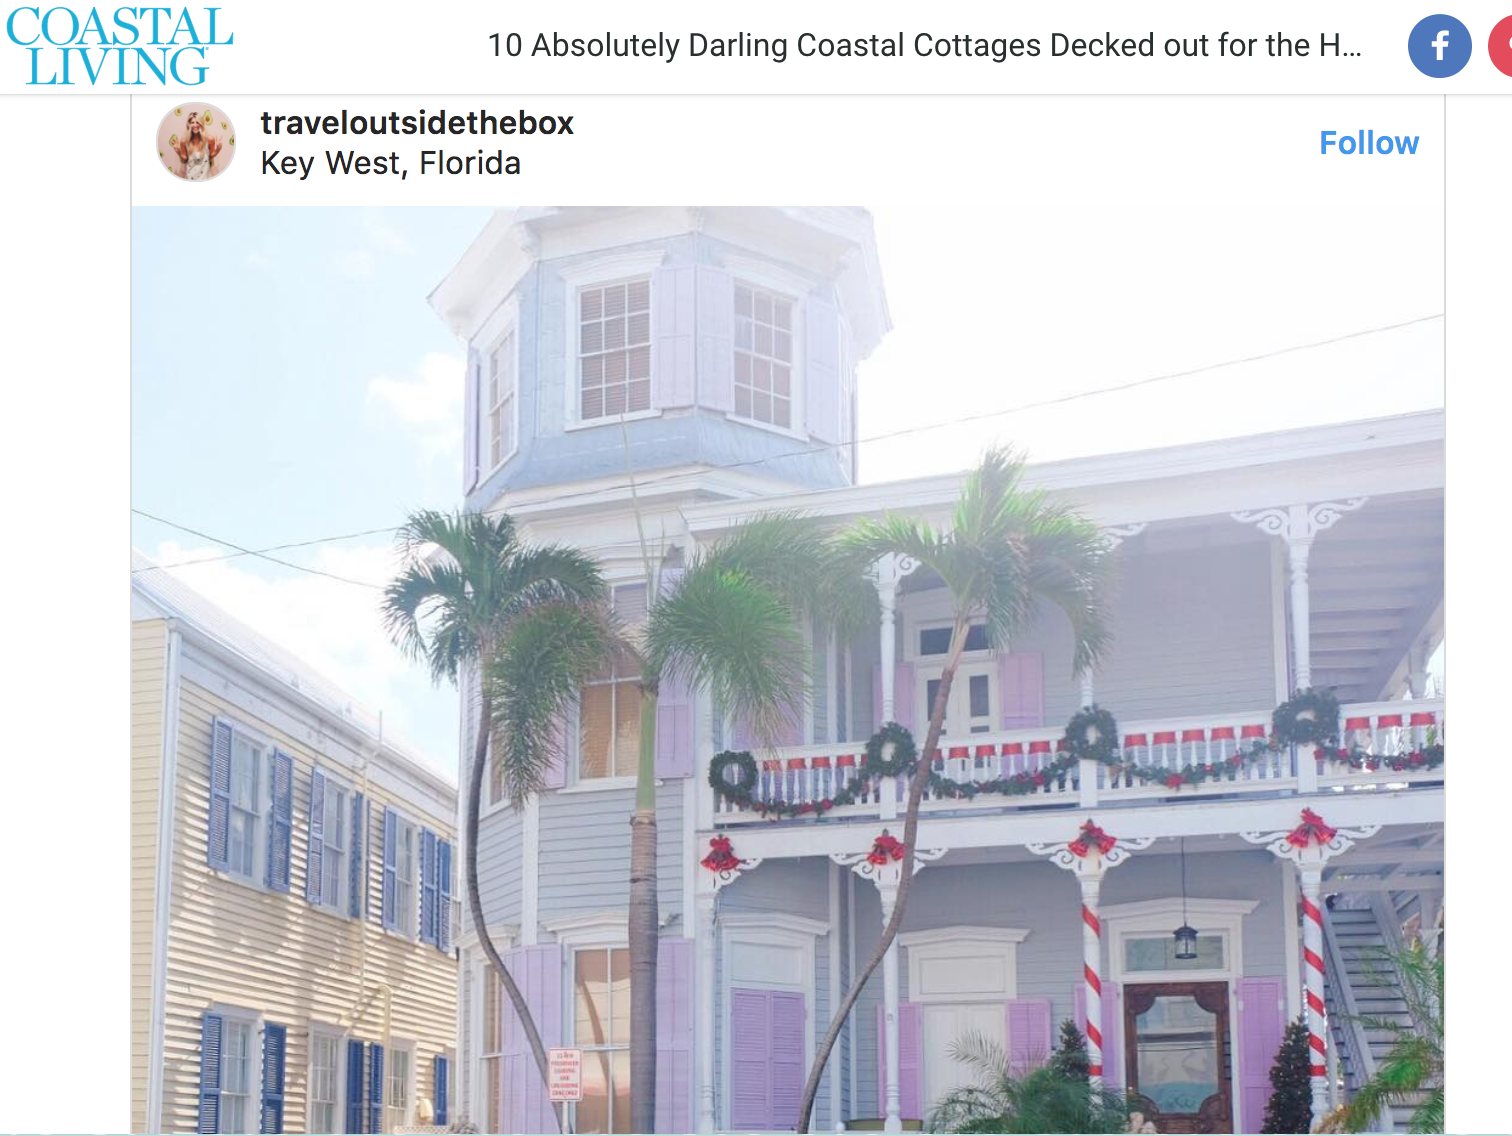 Ten Absolutely Darling Coastal Cottages Decked Out for the Holidays  from Coastal Living December 2017